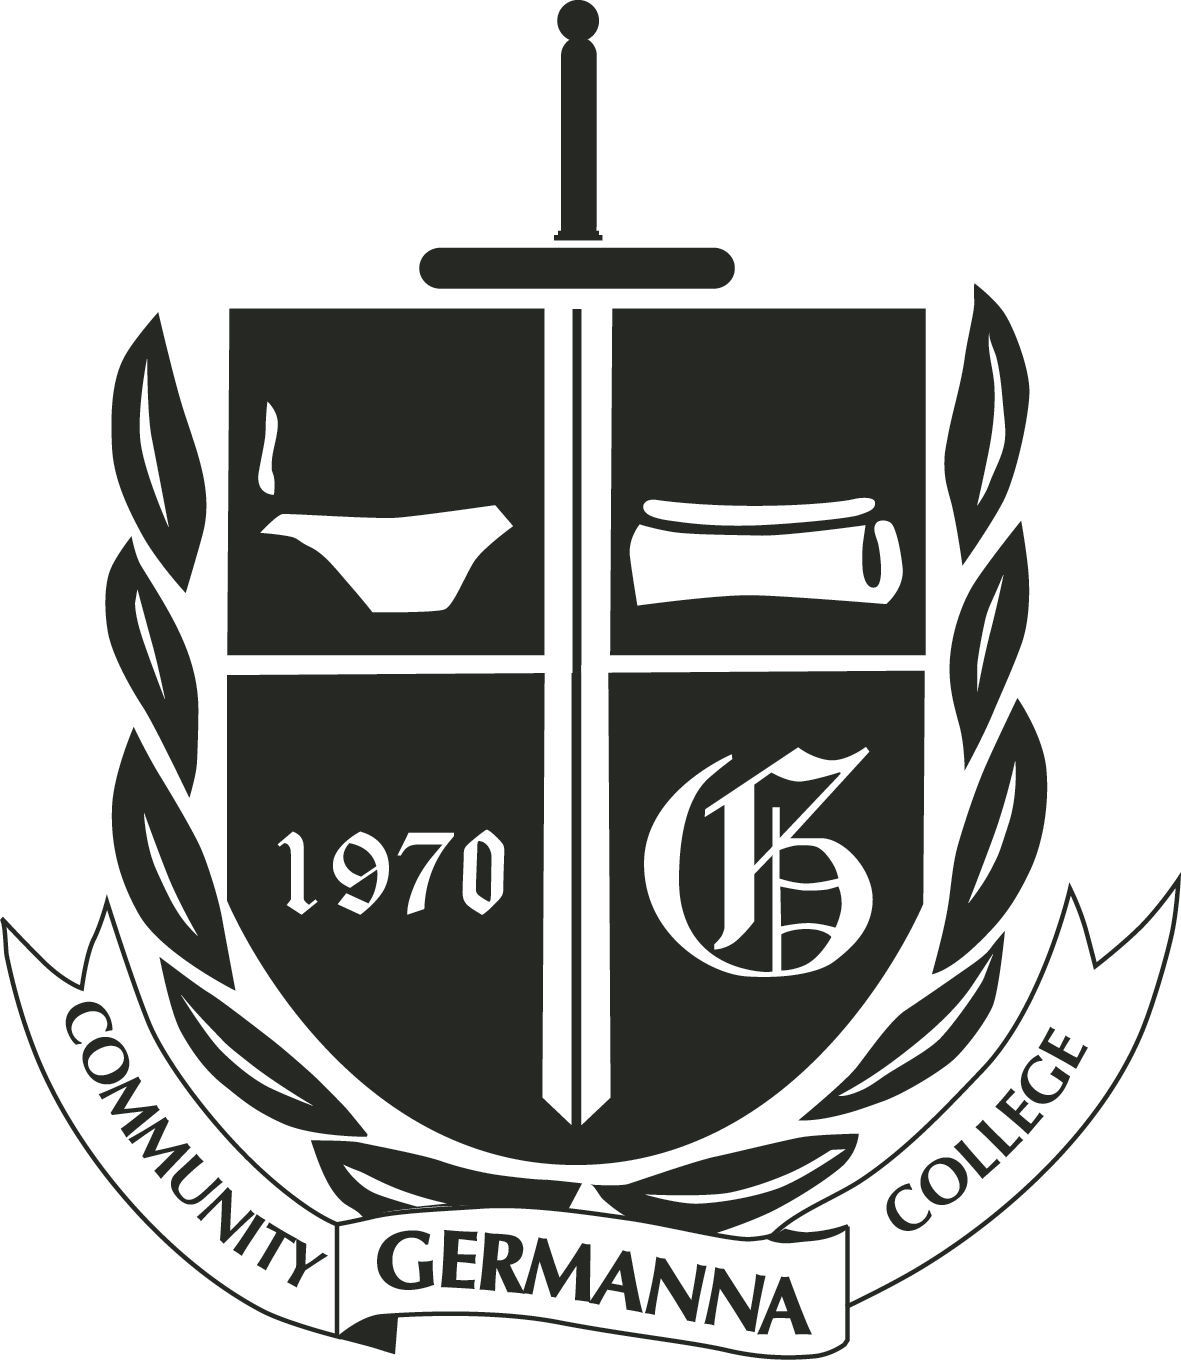 Germanna Community College seal